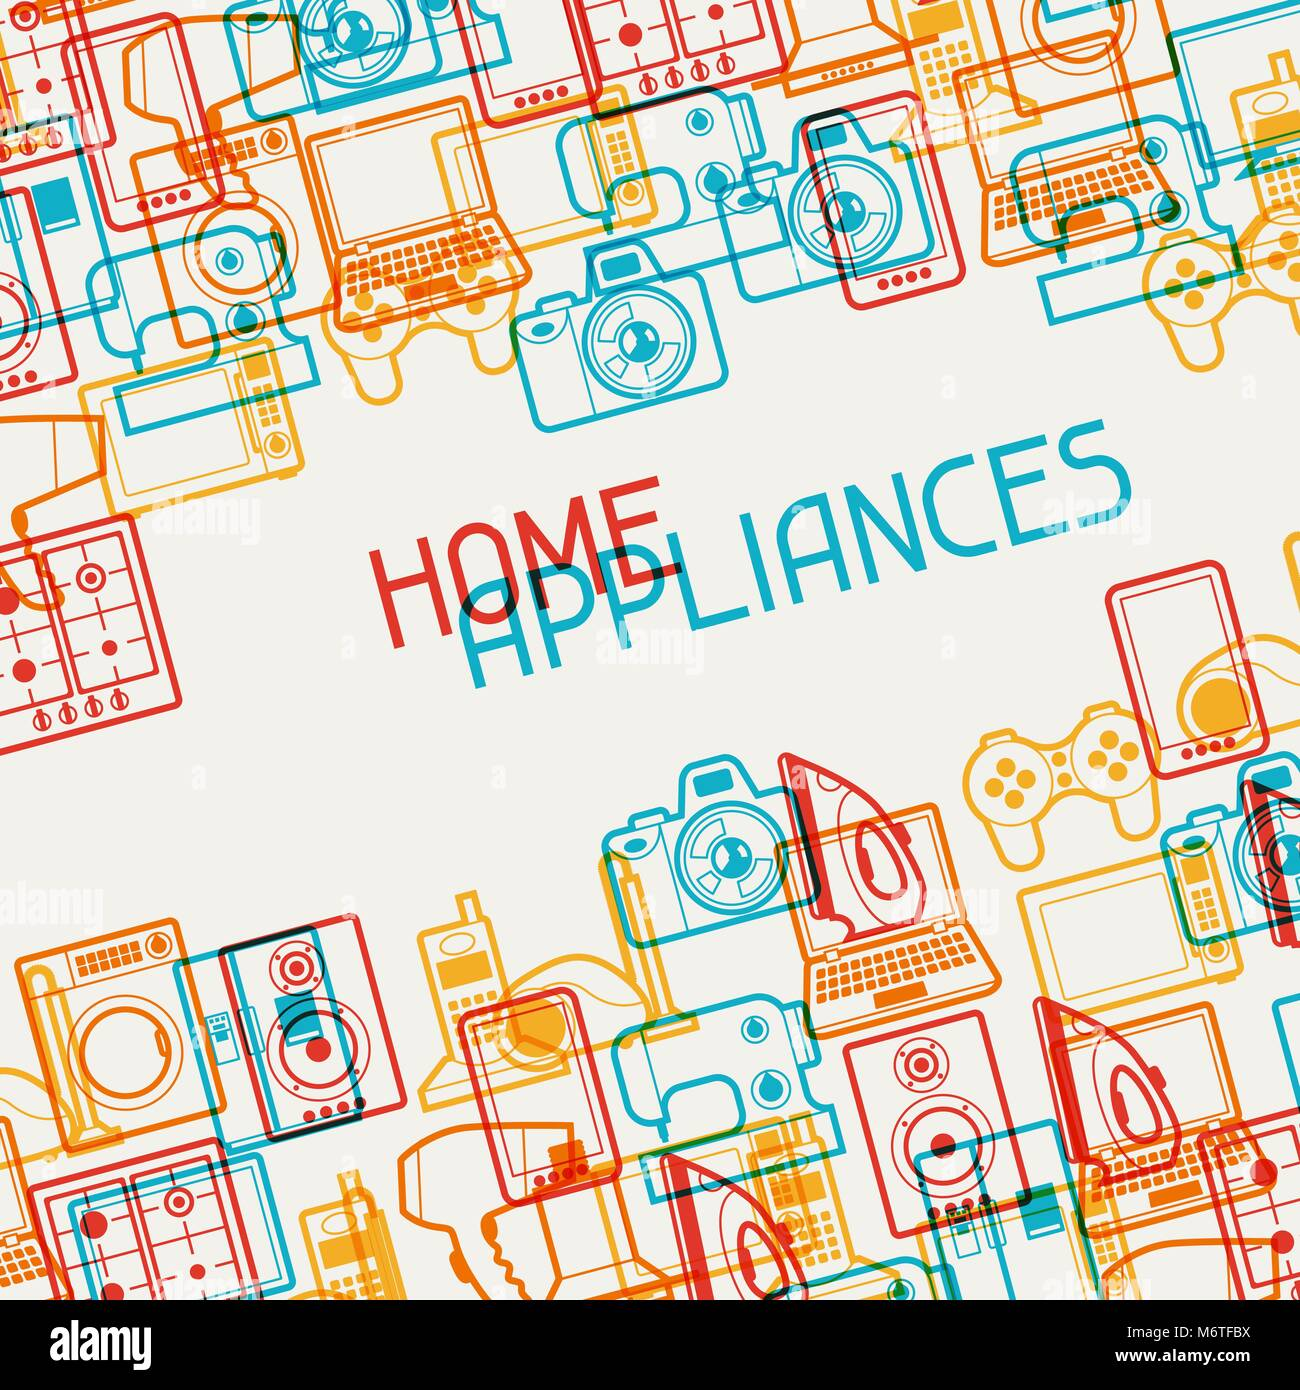 Household Household Appliances Vacuum Cleaner Stock Photos